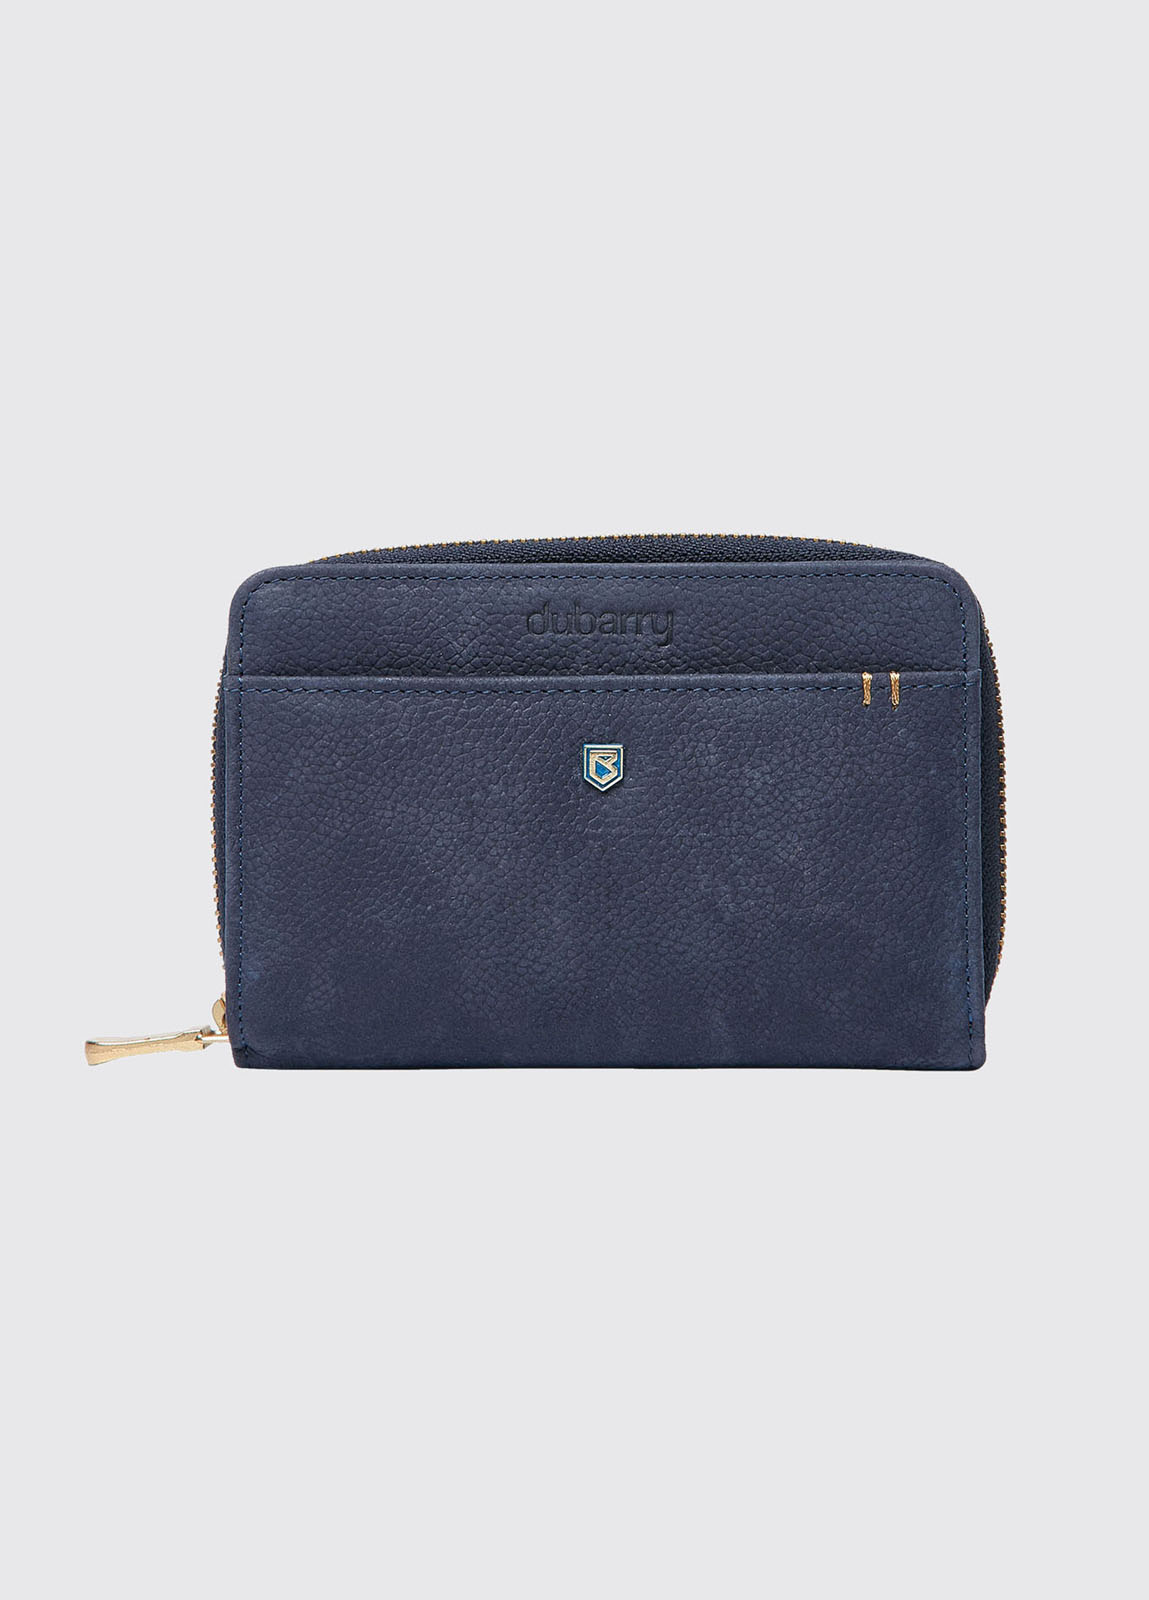 Portrush Leather Wallet - Navy